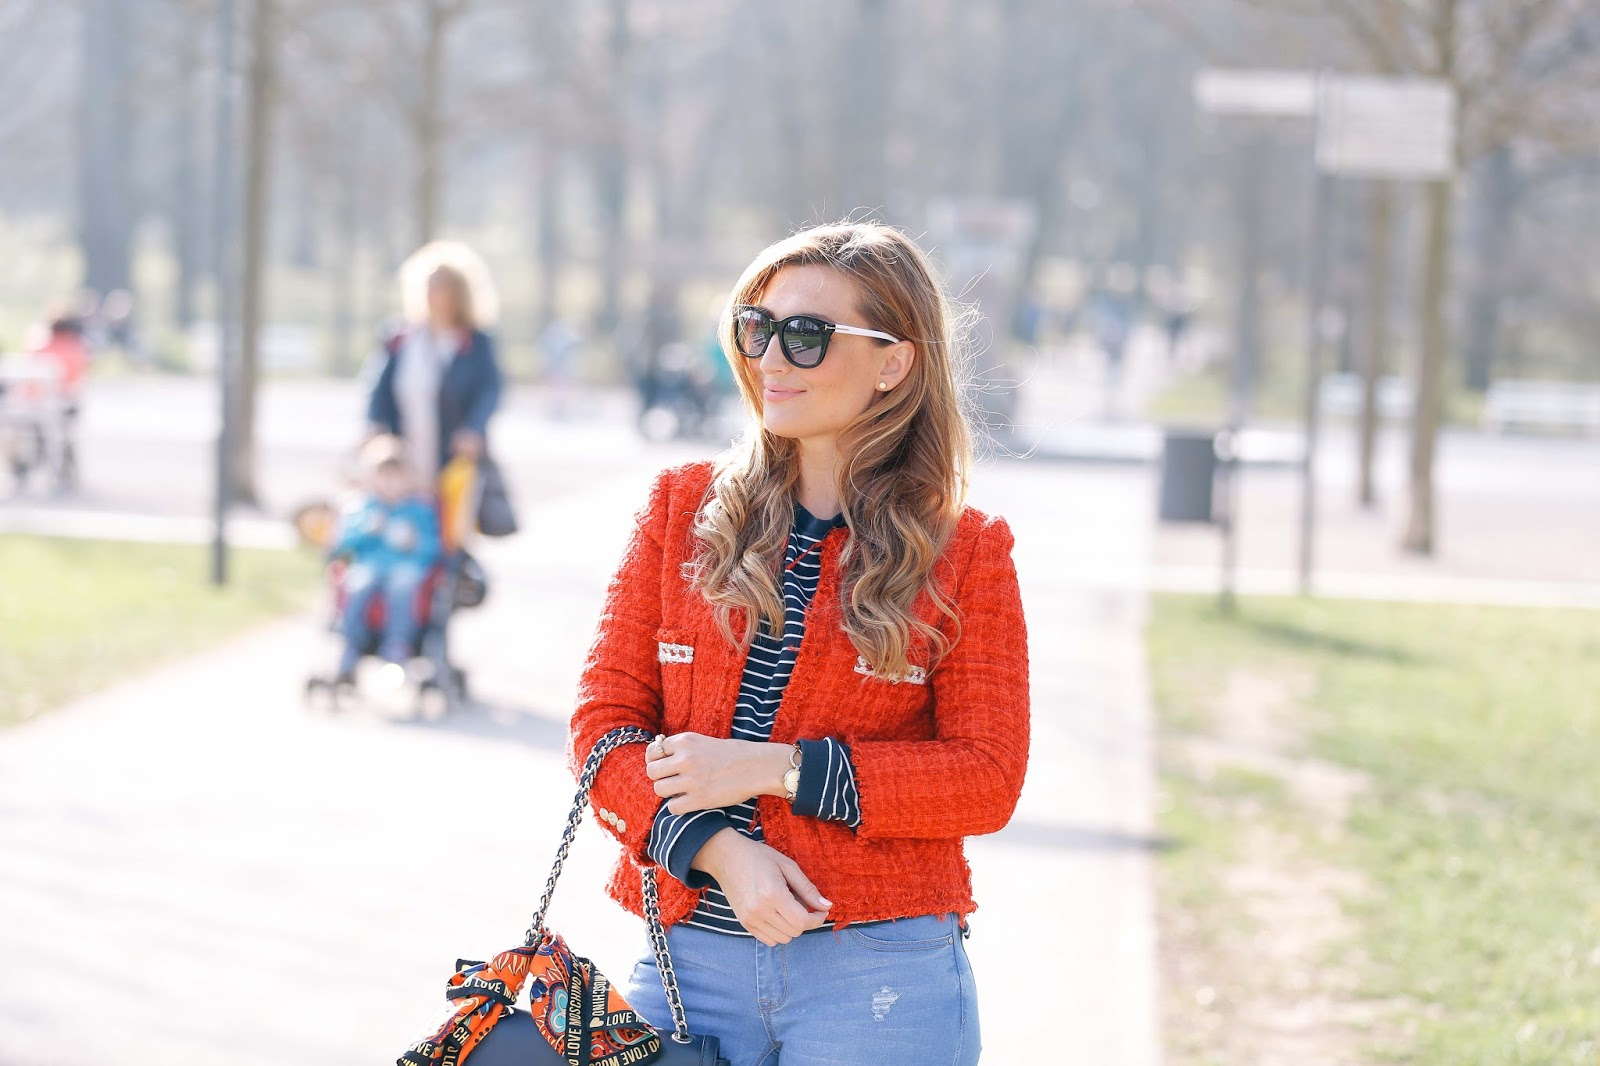 blue-jeans-blaue-jeans-blogger-chic-streetsylelook-roter blazer